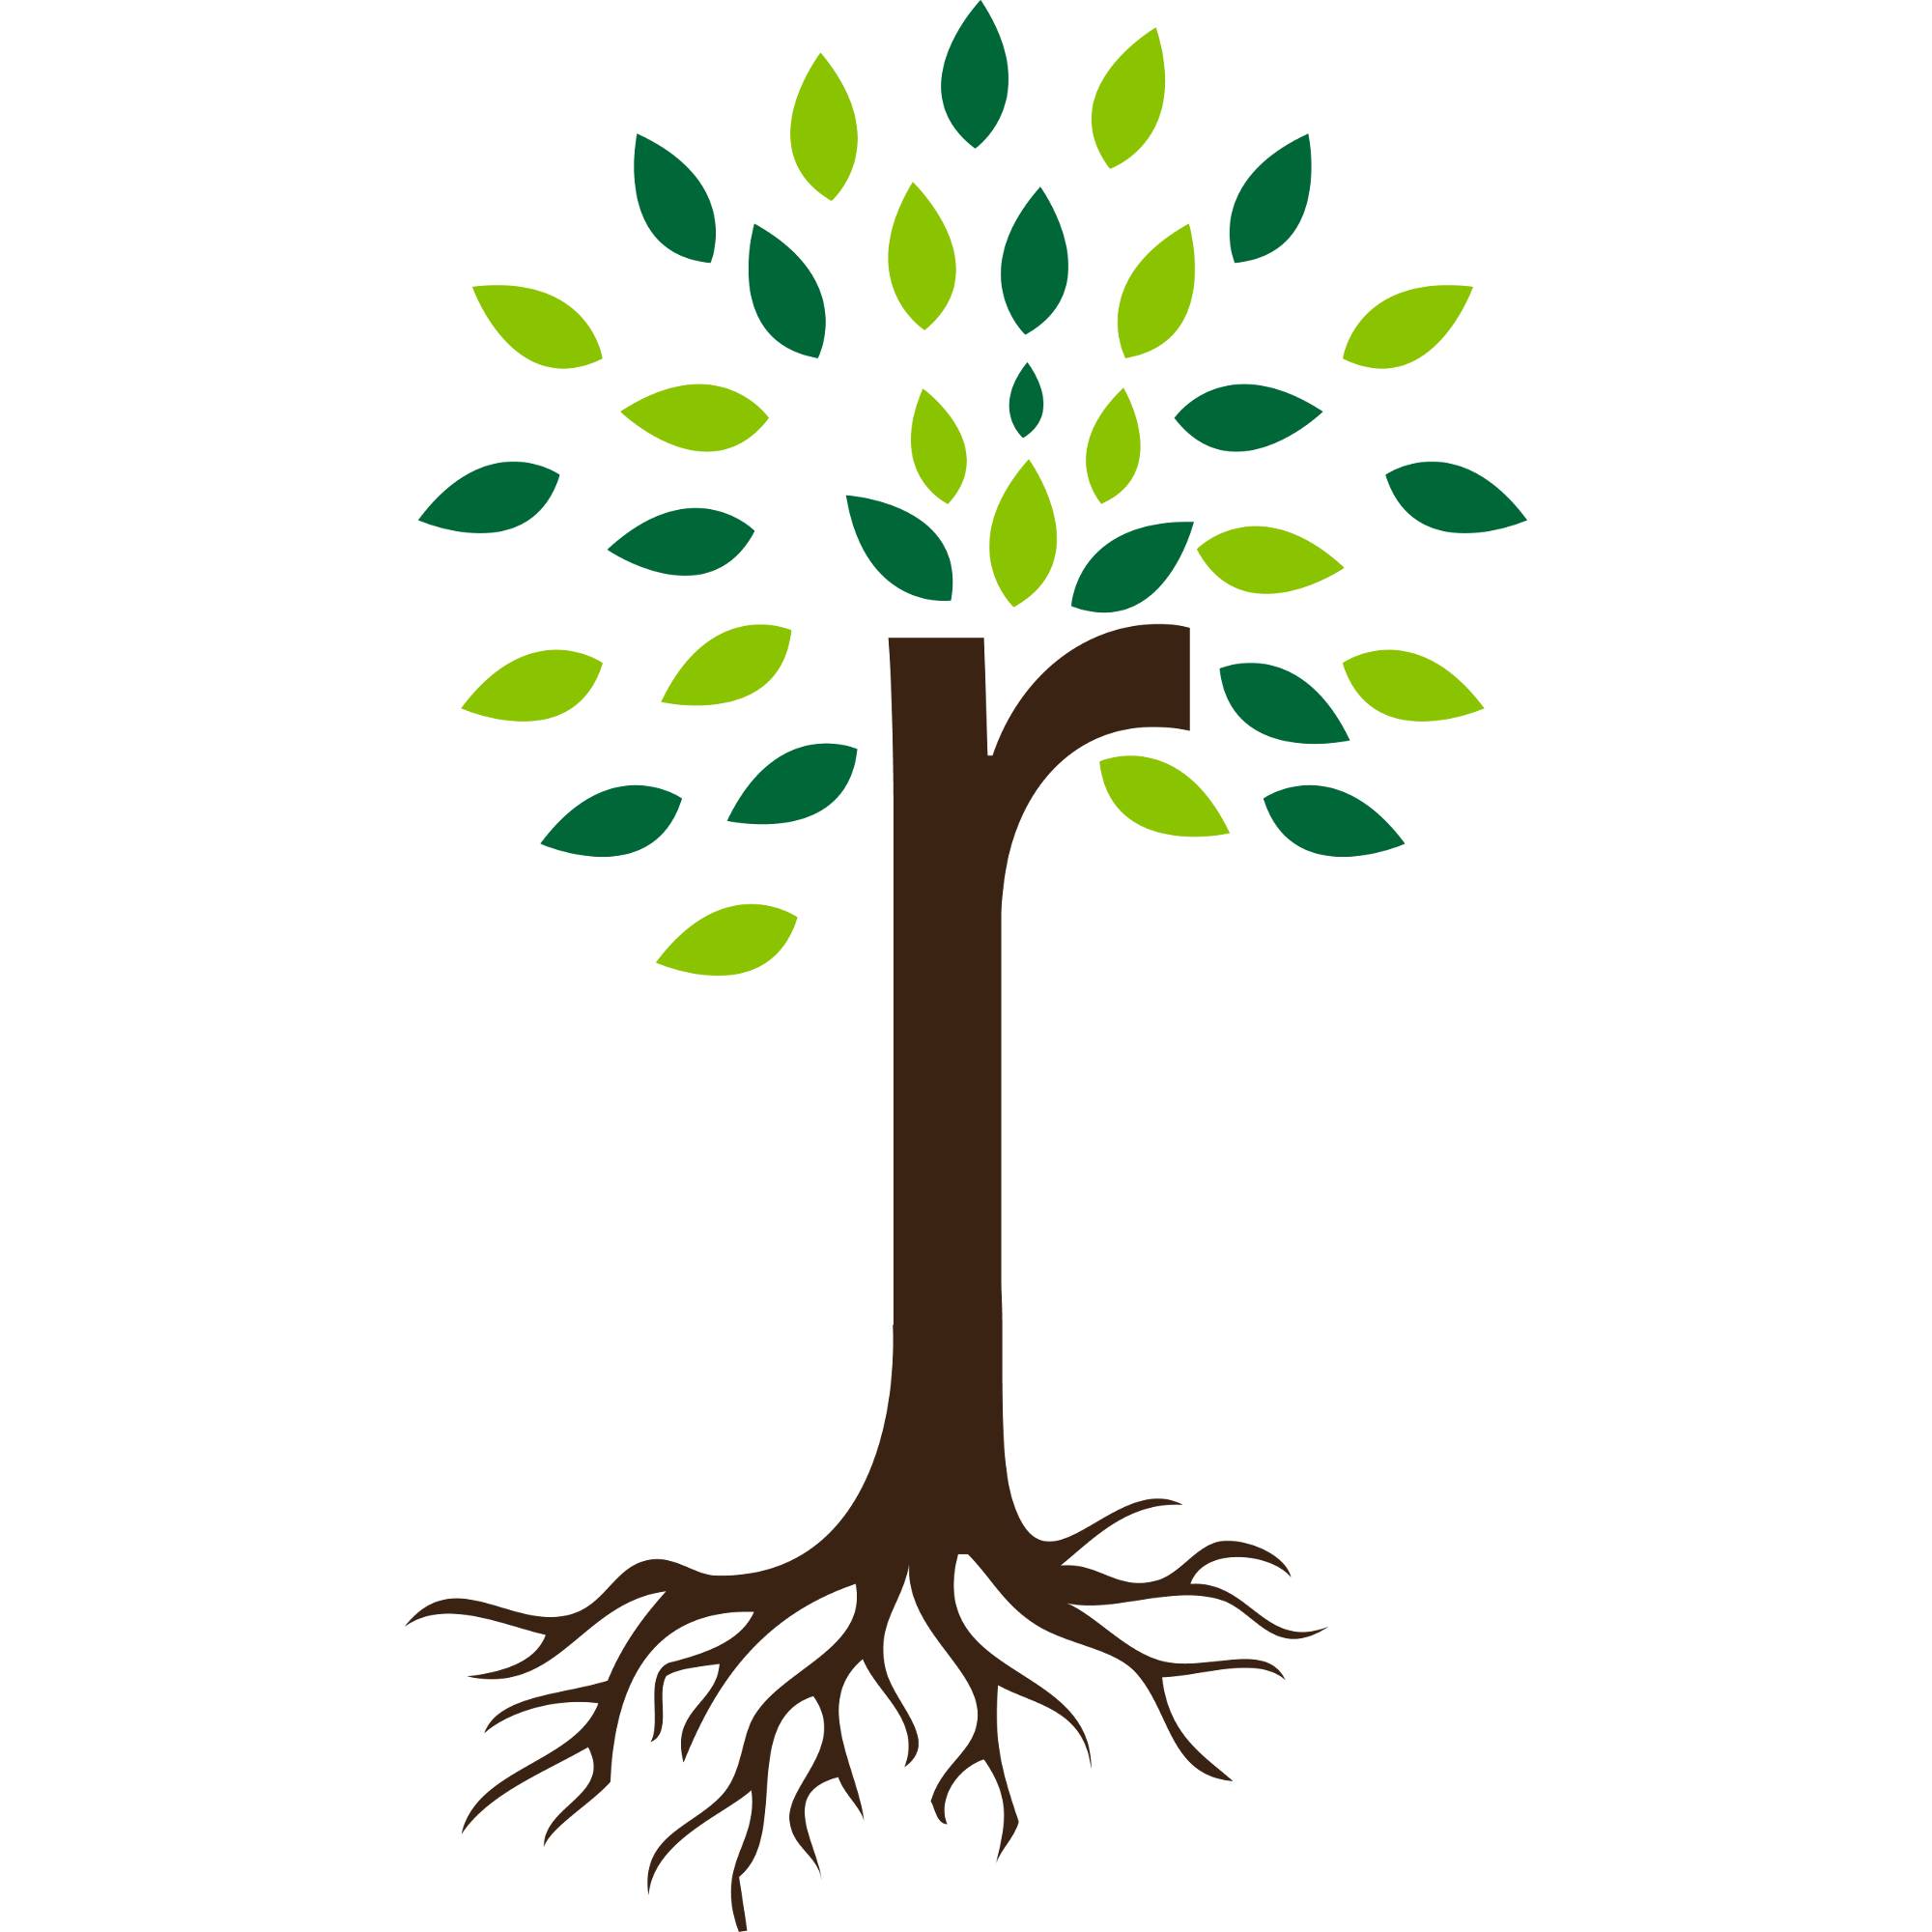 Plant roots png. Collection of clipart